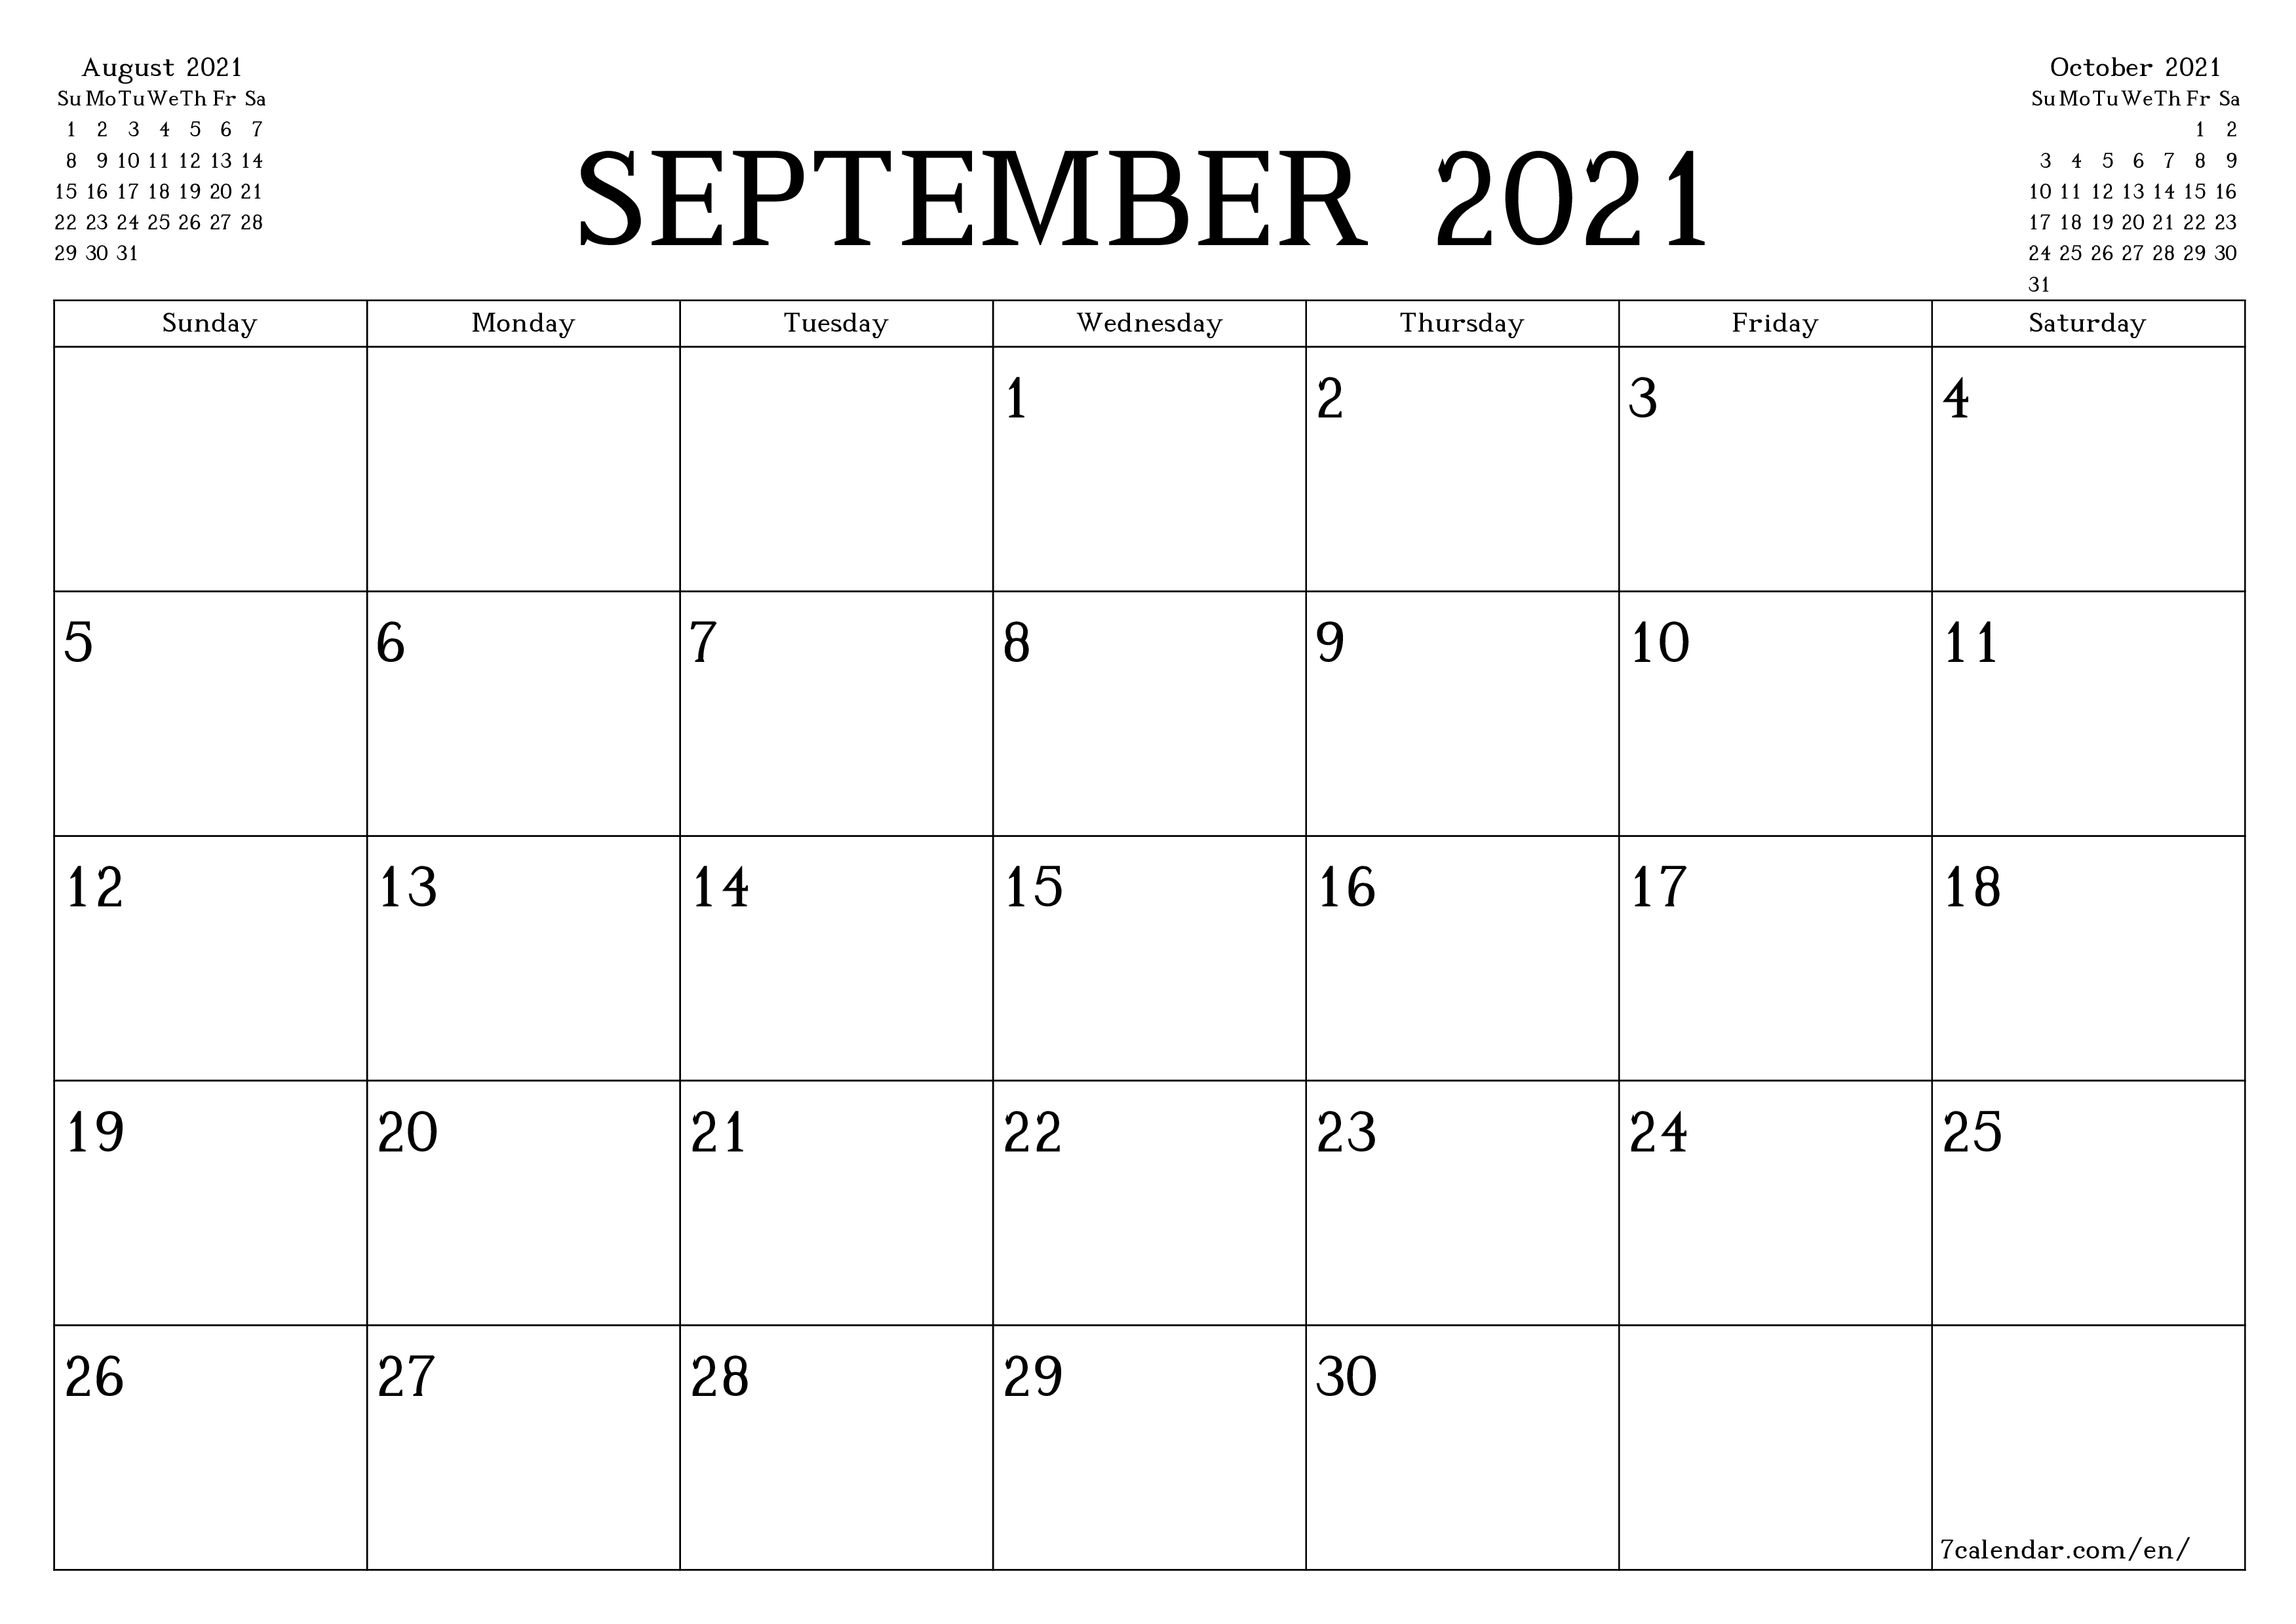 September 20 printable calendars and planners, PDF templates for ...